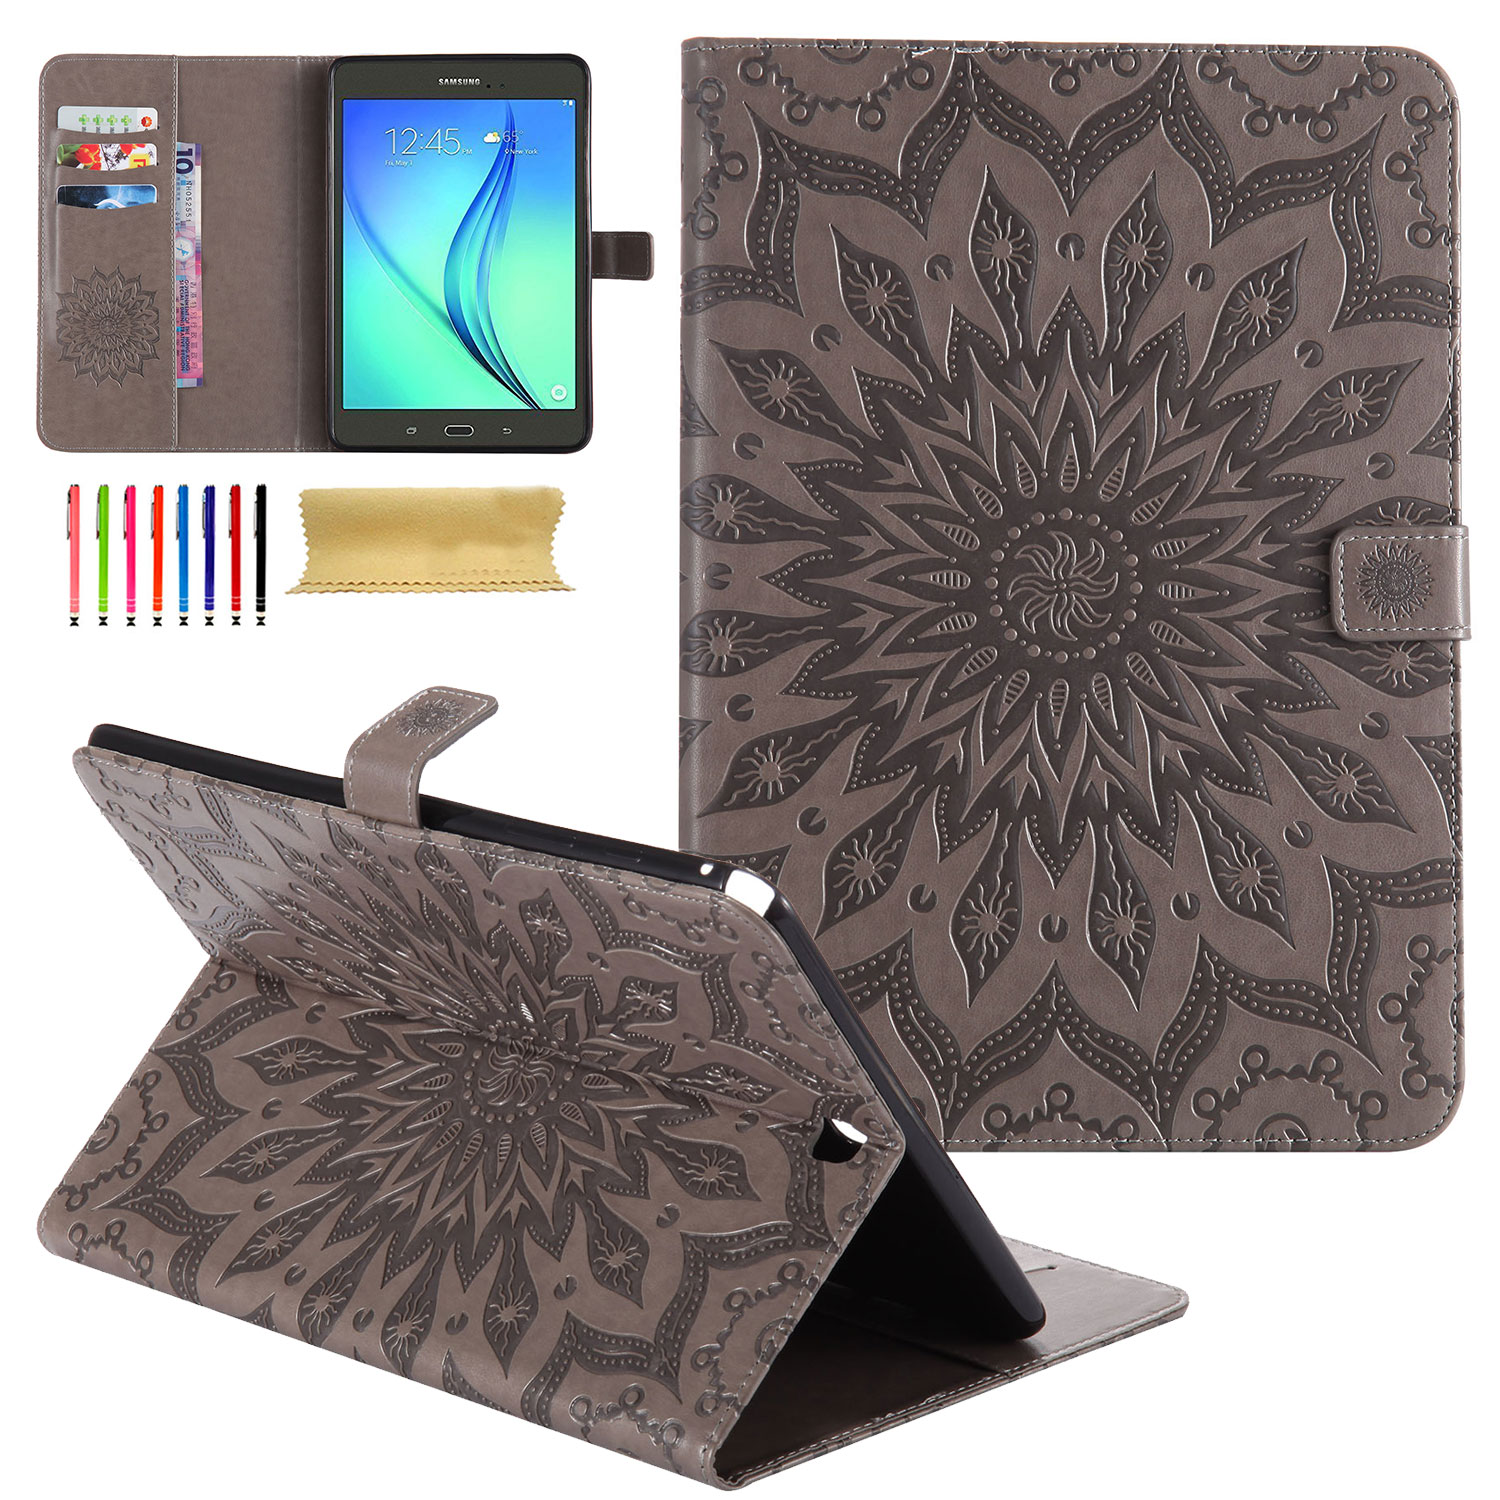 "Galaxy Tab A 10.1"" SM-T580 Case (NO S Pen Version), Goodest Slim Light Weight Full Body Protective Smart Cover Auto Sleep Wake Flip Folio Kickstand Wallet Case for Samsung Galaxy Tab A 10.1, Gray"